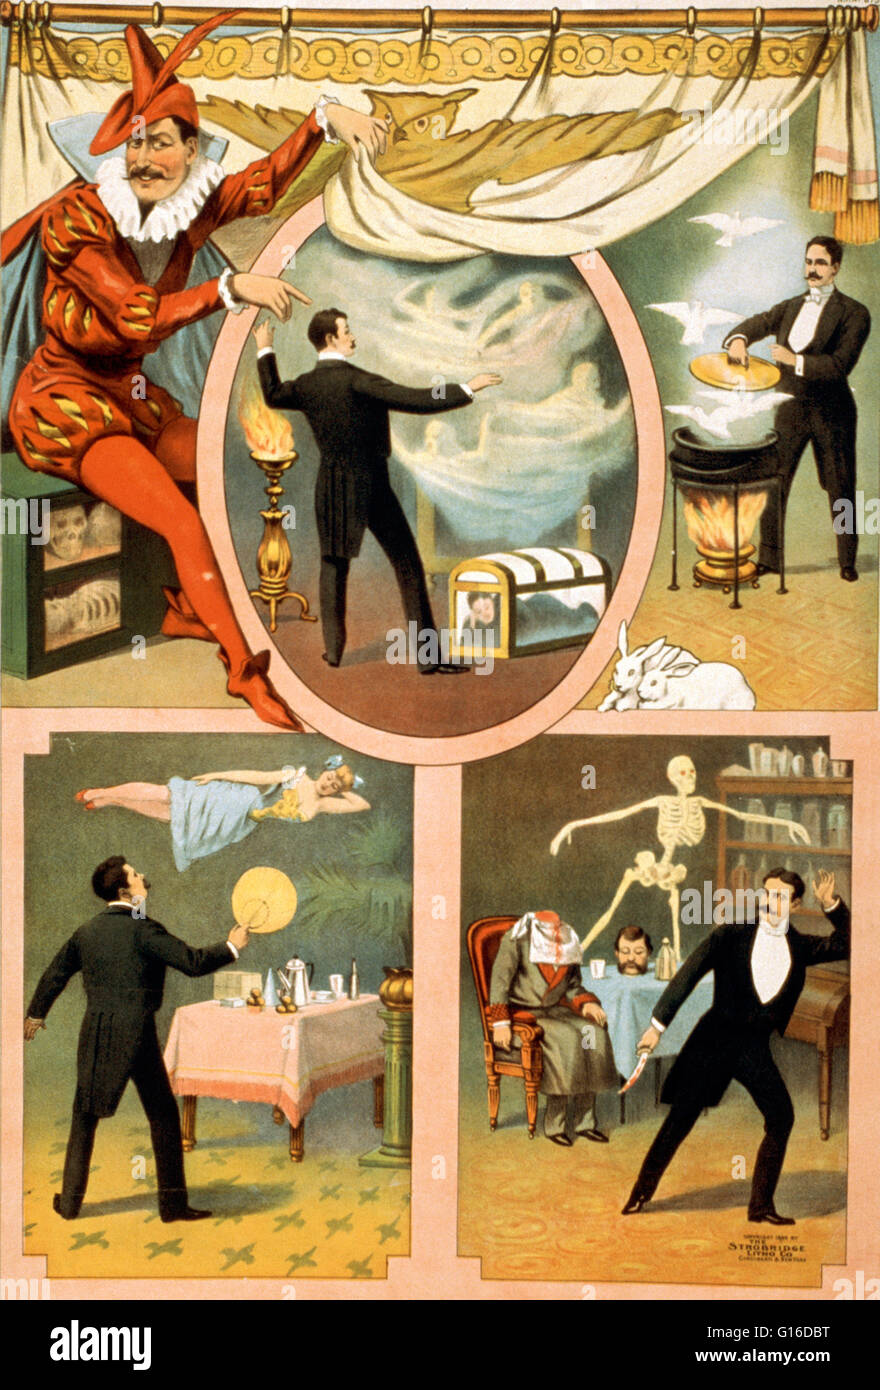 Entitled: 'Zan Zig performing in four magic vignettes' lithograph poster created by Strobridge & Company - Stock Image